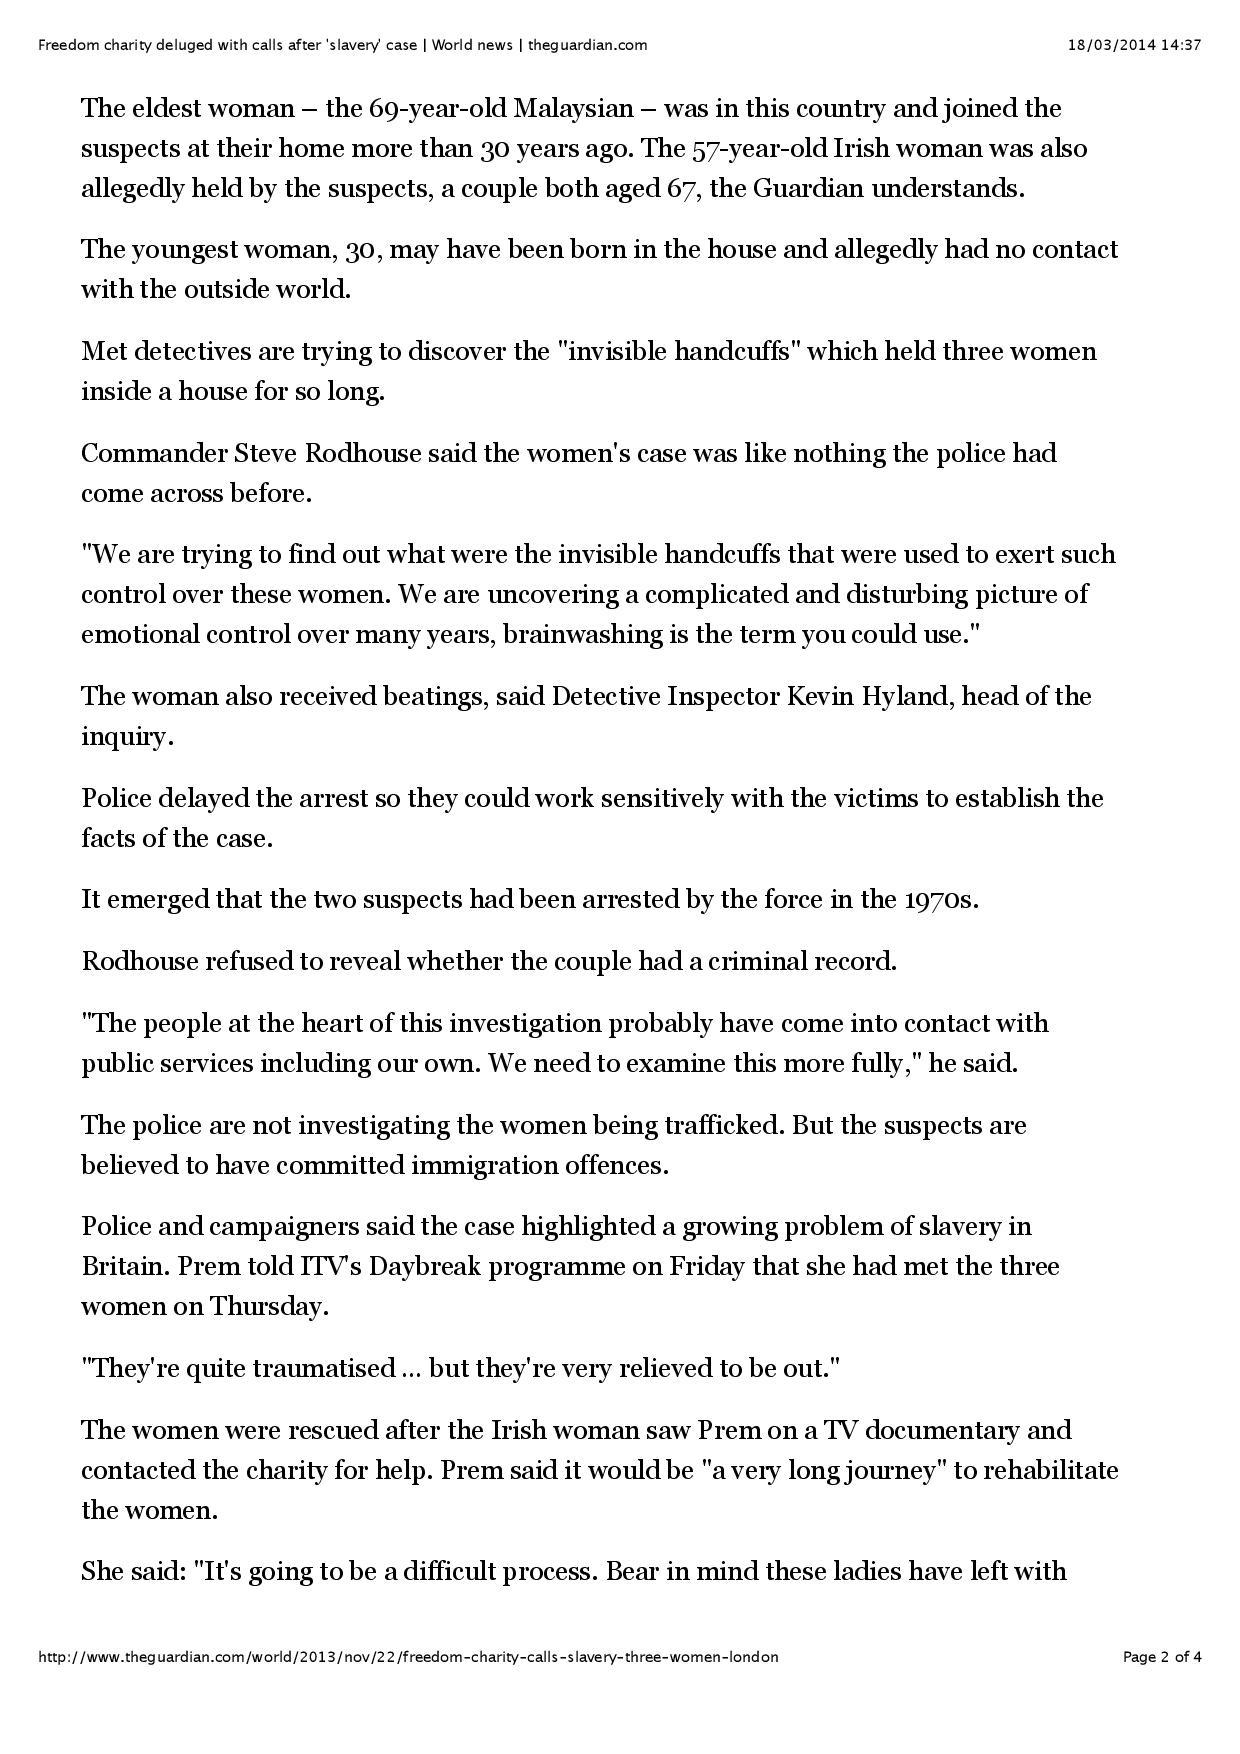 done-freedom-charity-deluged-with-calls-after-slavery-case-world-news-theguardian-com-page-002